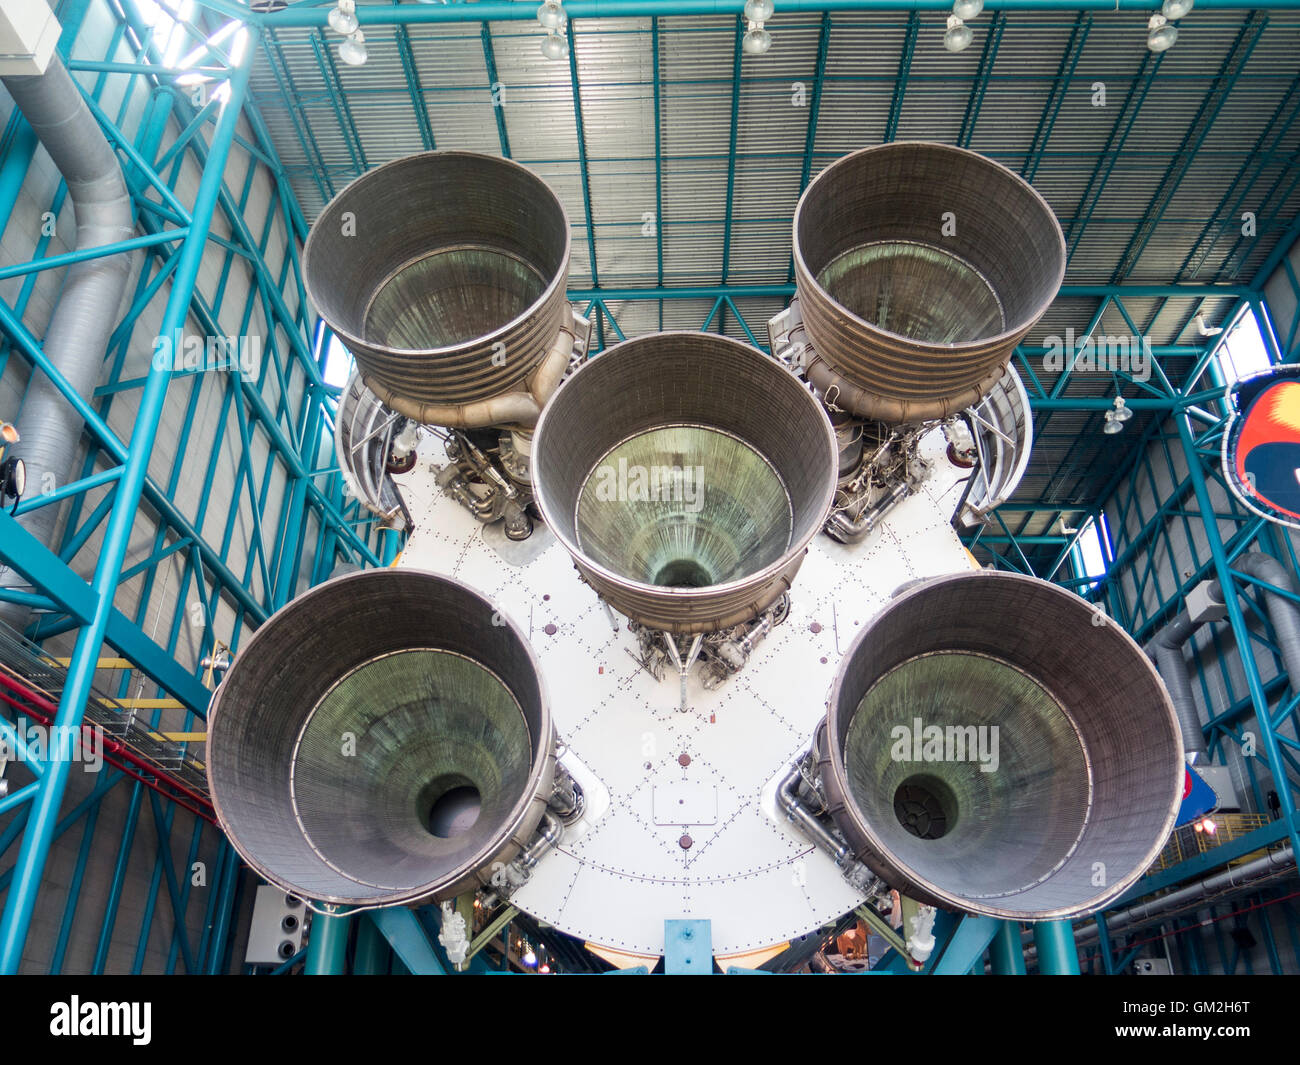 Saturn V Rocket High Resolution Stock Photography And Images Alamy